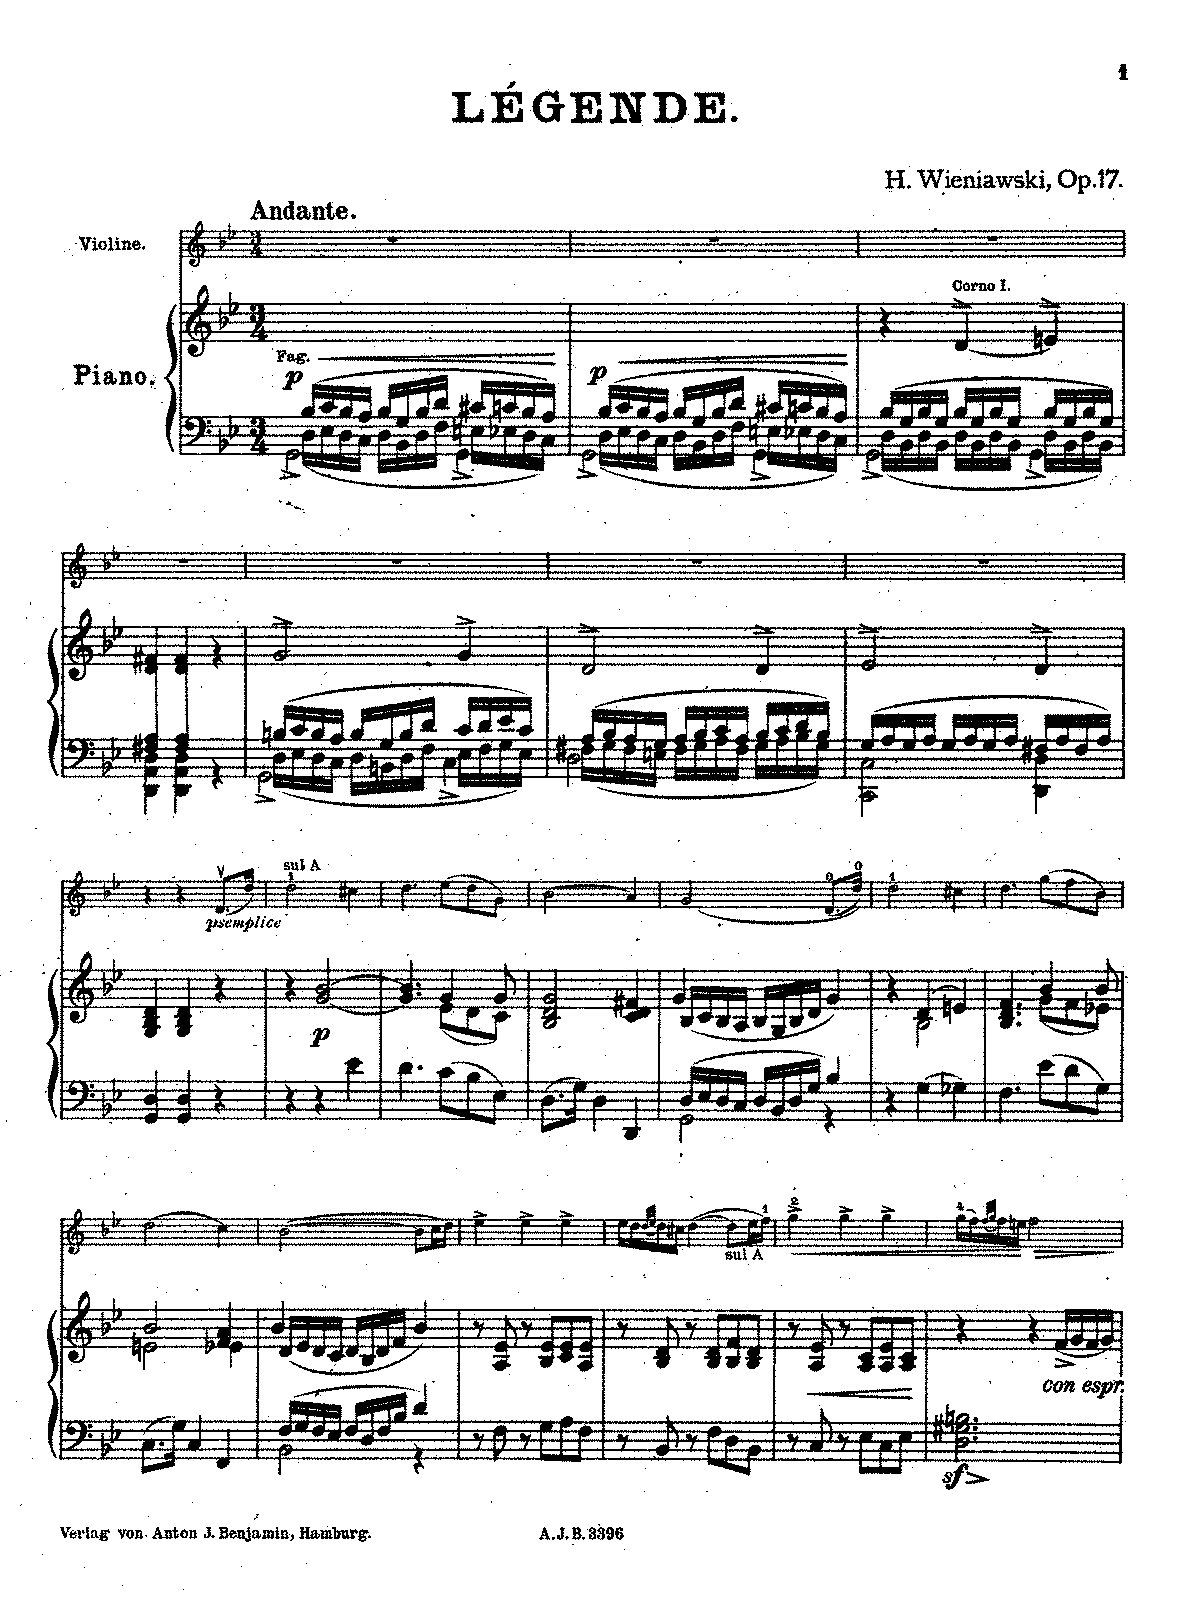 PMLP17449-Wieniawski - Legende Op17 (Hamburg) piano part.pdf